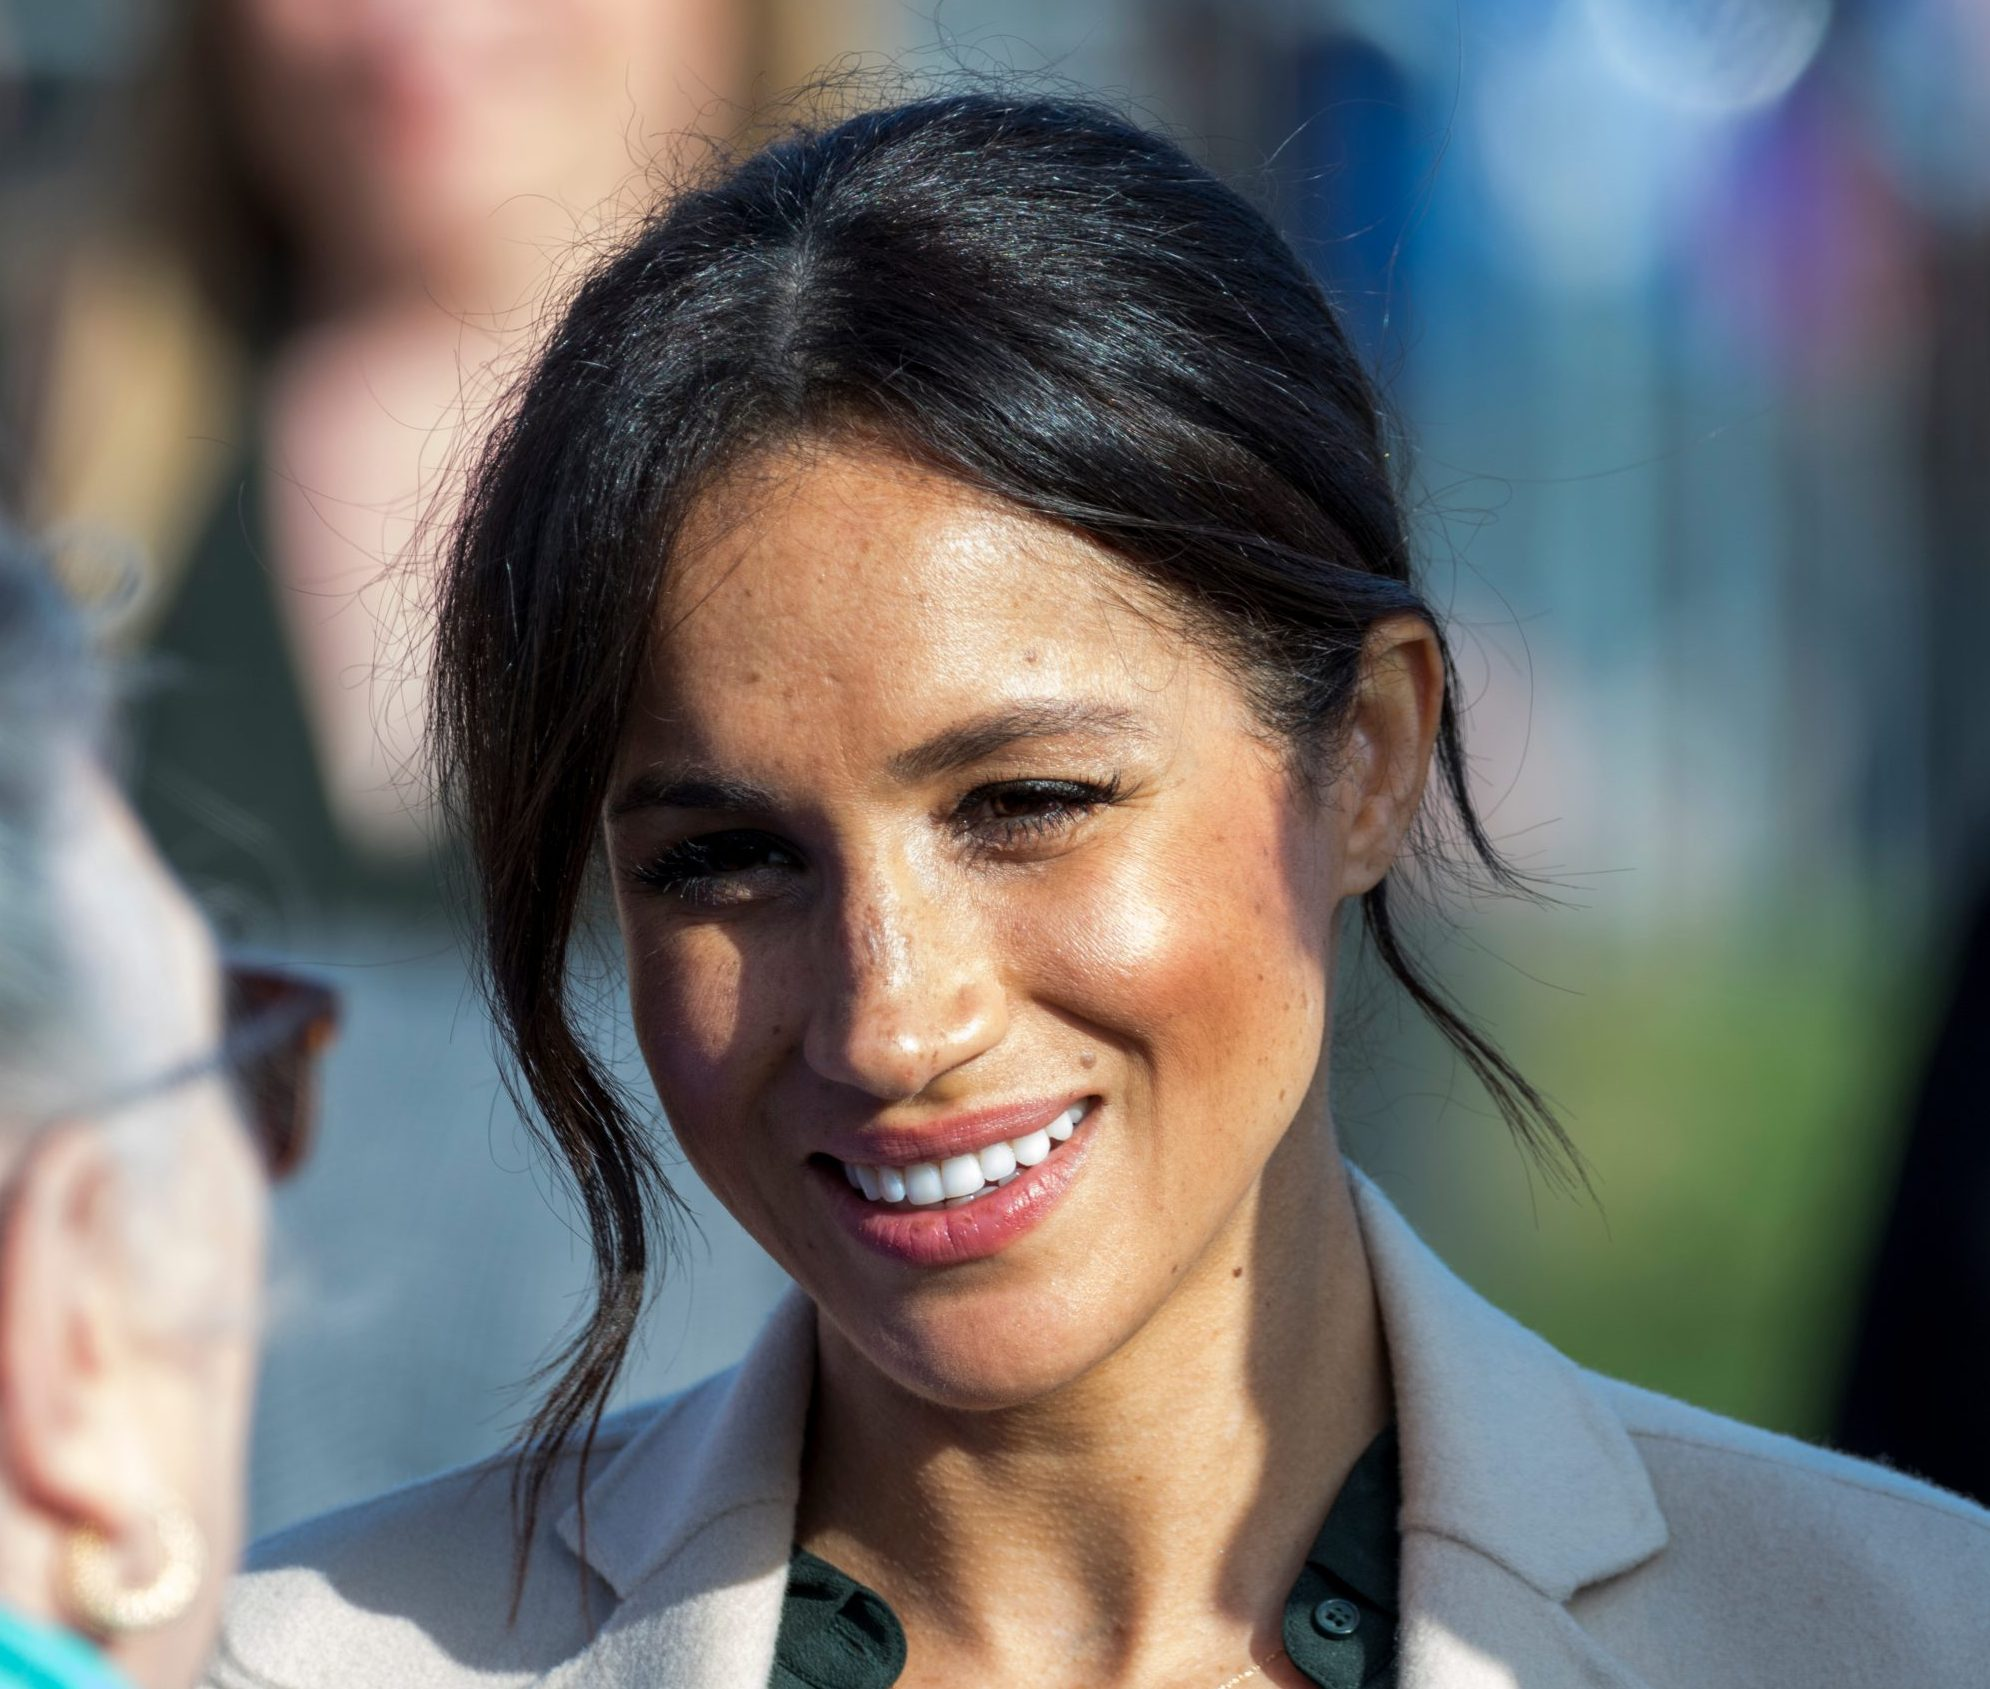 A close-up photo of Meghan Markle from the neck up. Her black hair is tied back though a few strands dangle around her face. The sun is shining on her and she gives a small smile as she speaks with an elderly lady.